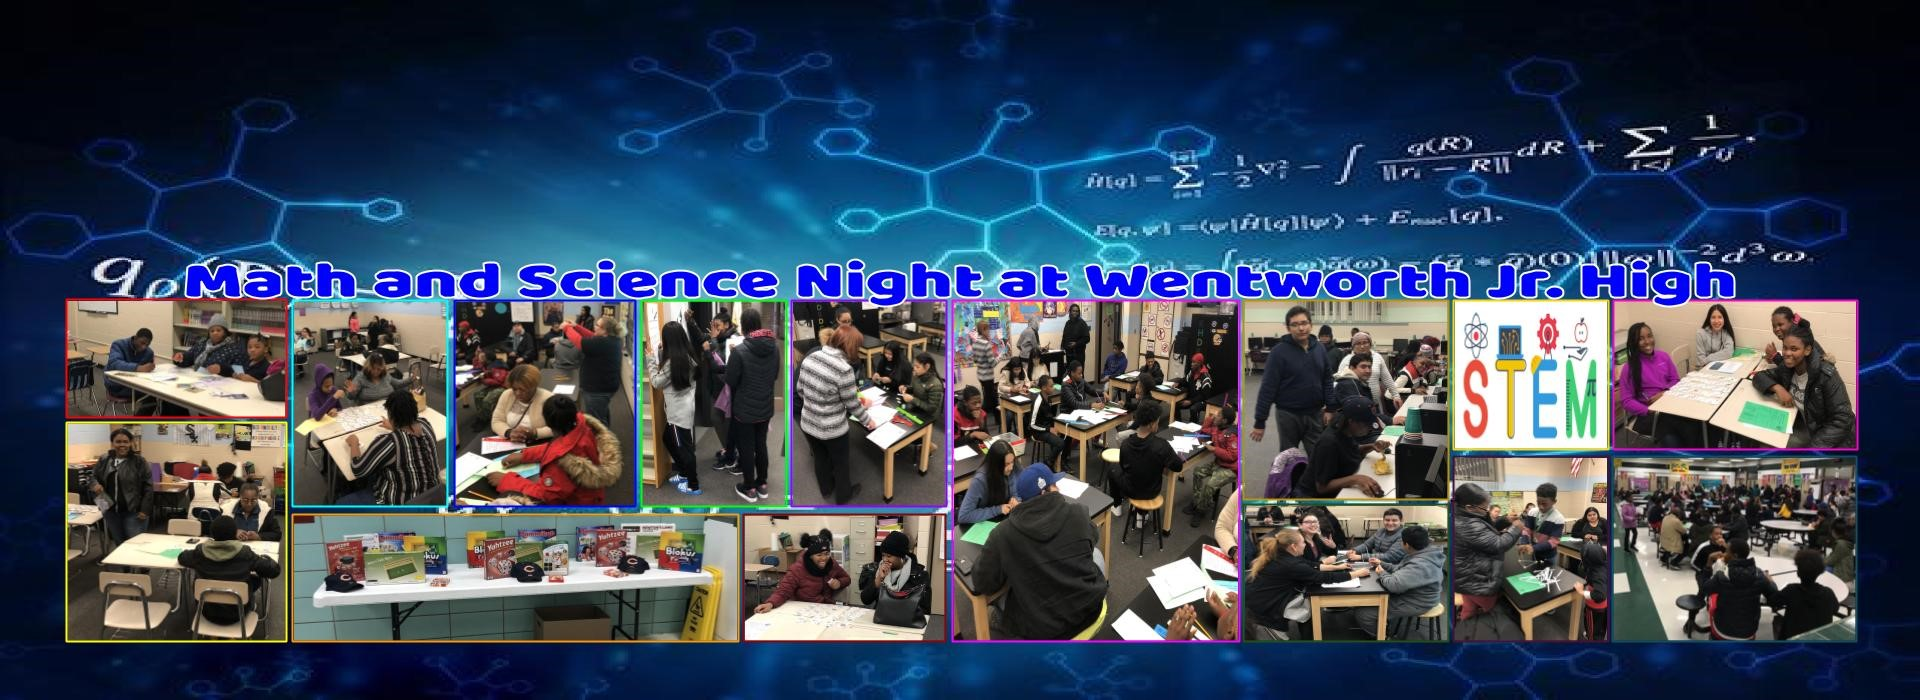 WJH Math and Science Night 2019